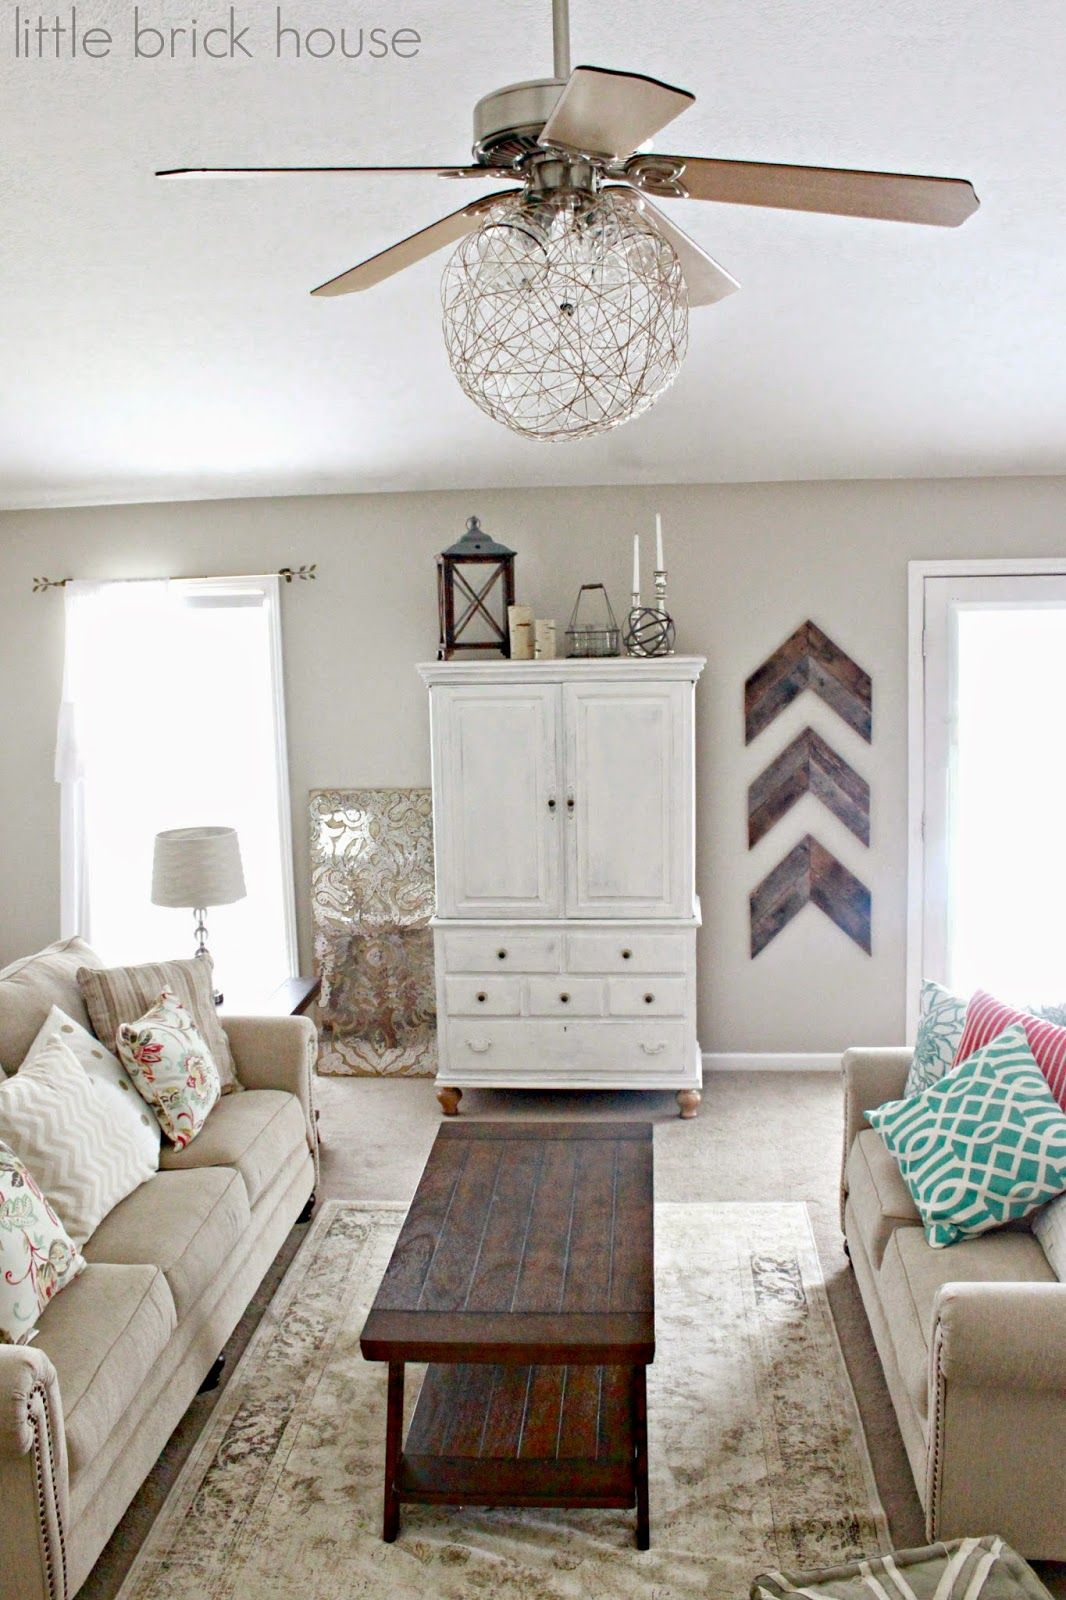 Little Brick House: Ceiling Fan Makeover | Ceiling Fan Makeover ...